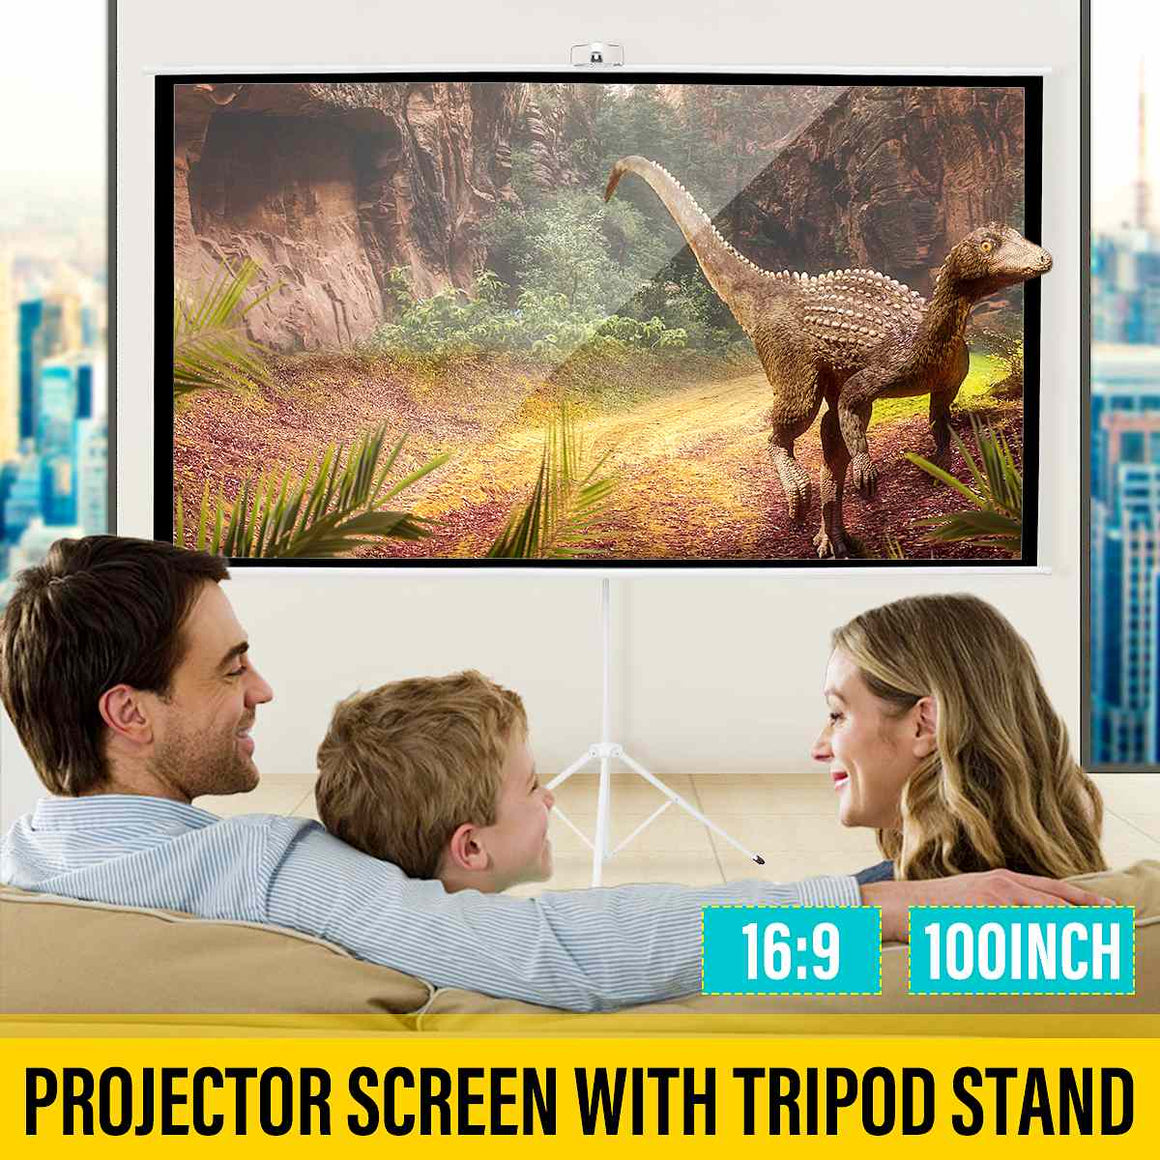 100 Inch 3D HD Portable Projector Screen for Indoor Outdoor Office WIth Tripod Stand